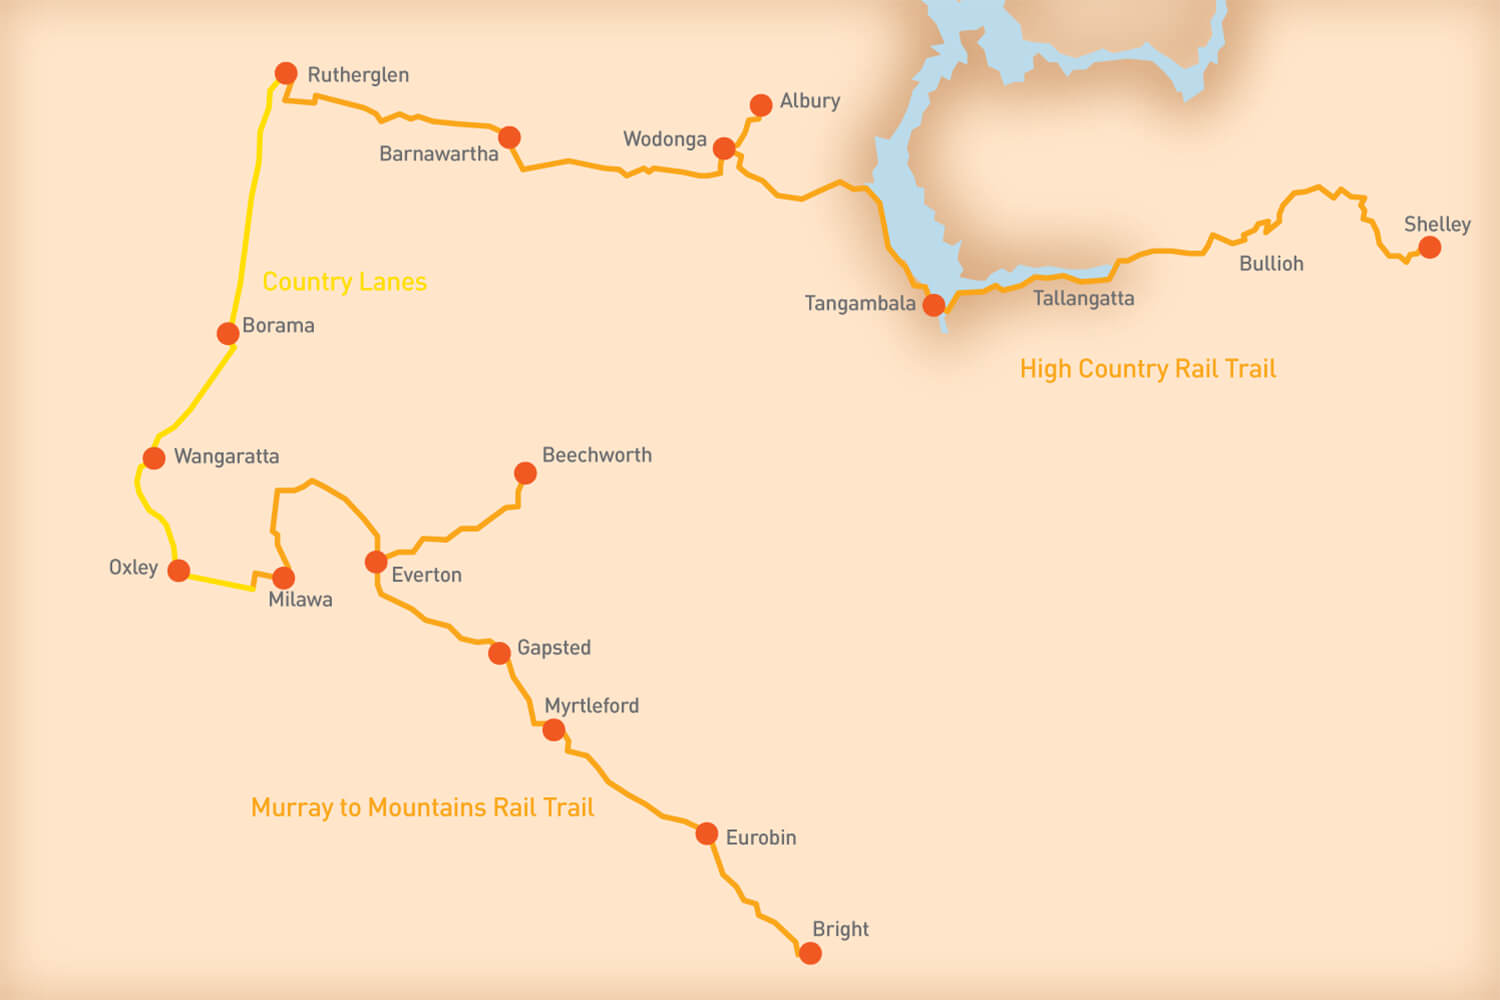 Rail Trails and Country Lanes - Tour Route